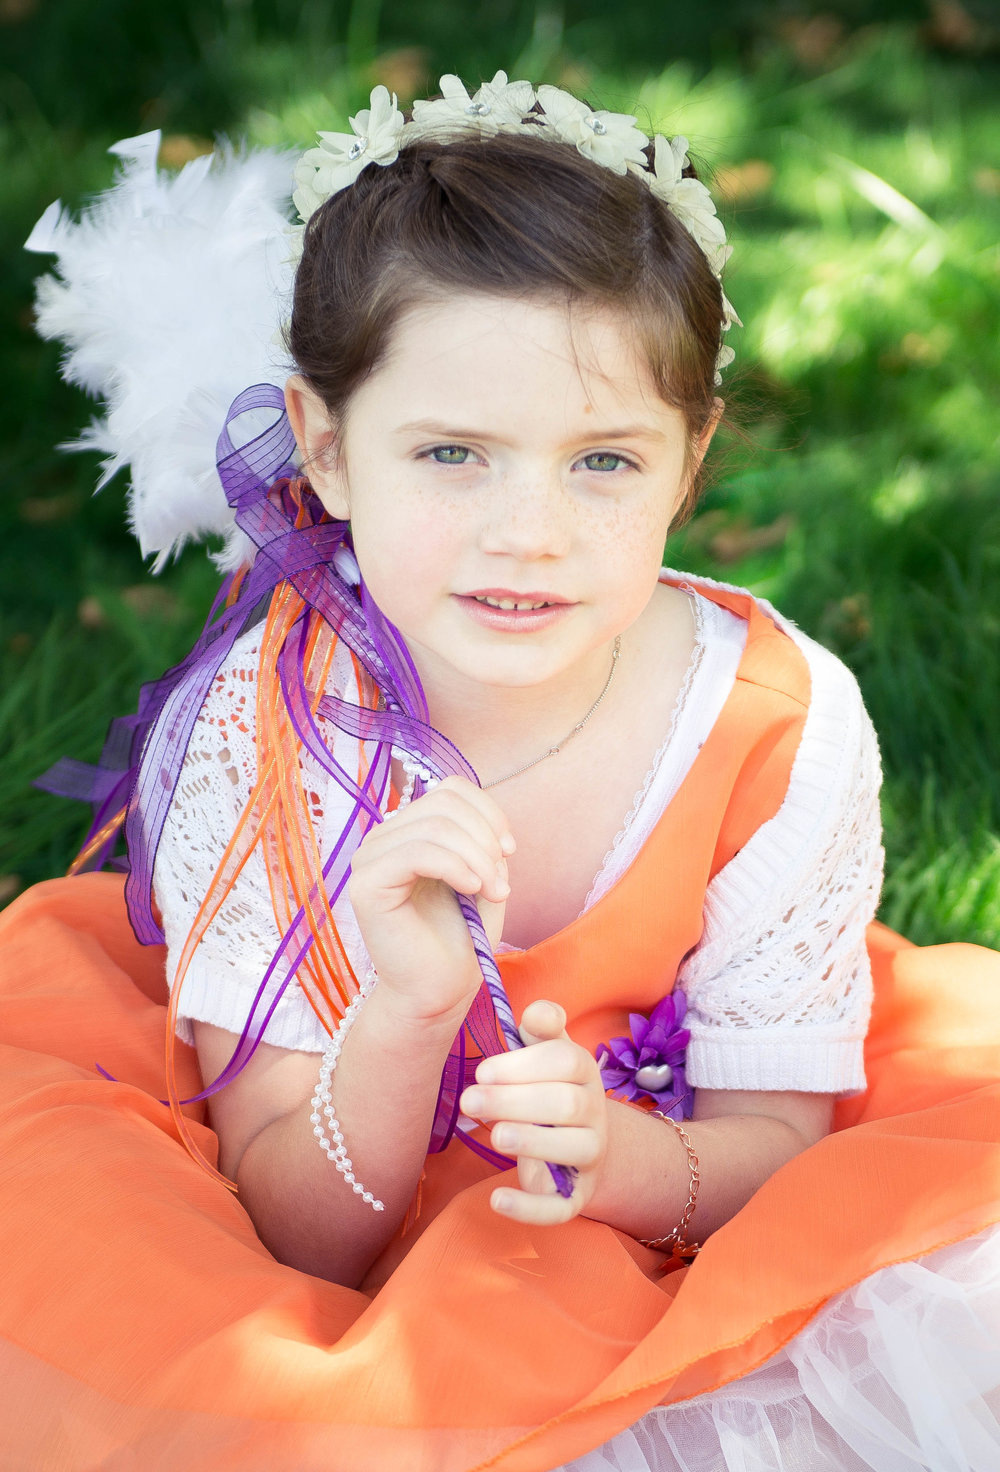 flower-girl-grass-portrait.jpg